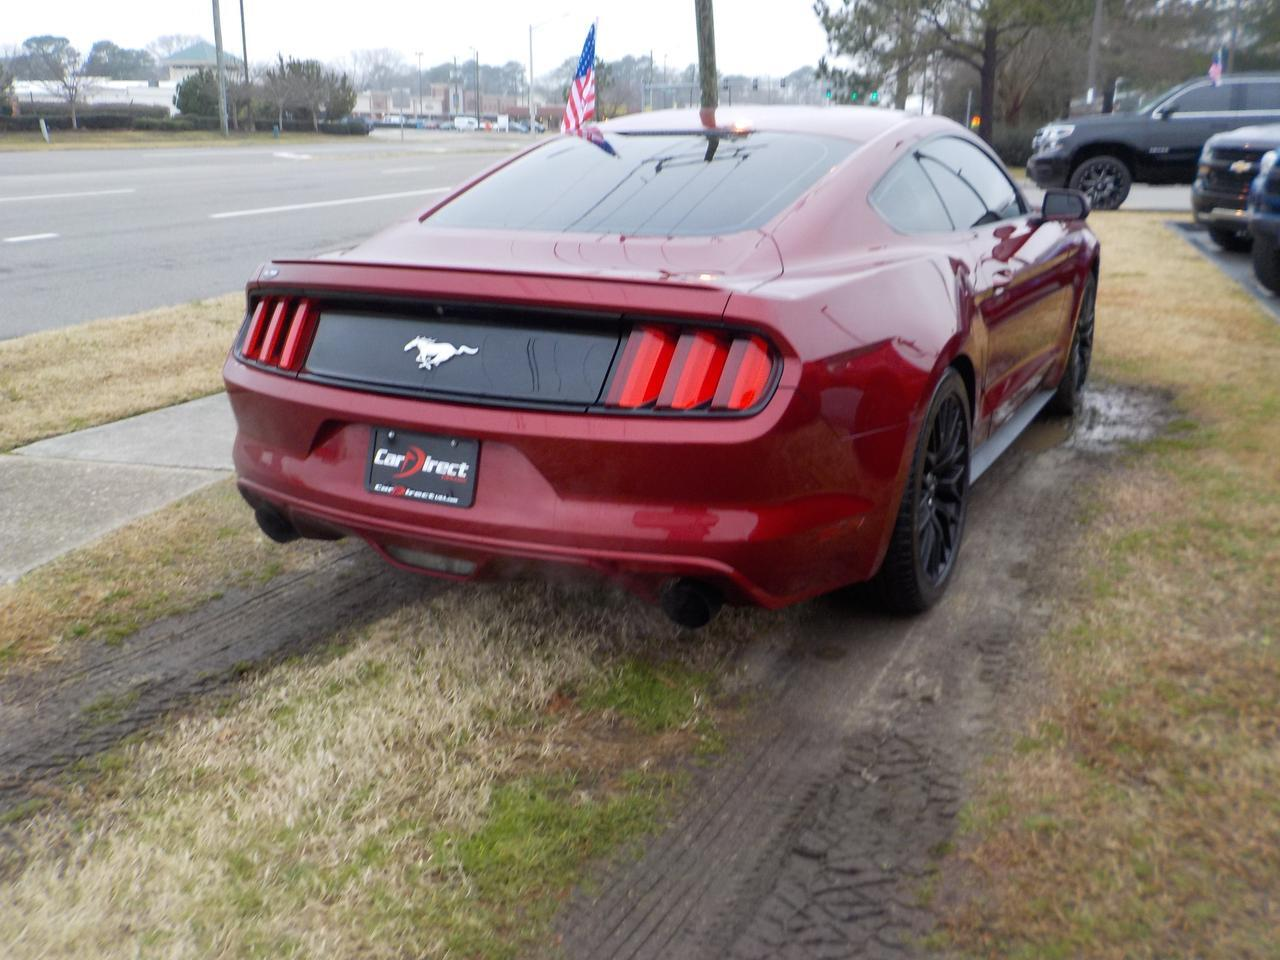 2016 FORD MUSTANG FASTBACK ECOBOOST RWD, BLUETOOTH WIRELESS, BACKUP CAMERA, REMOTE START, VERY CLEAN, ONLY 71K MILES! Virginia Beach VA